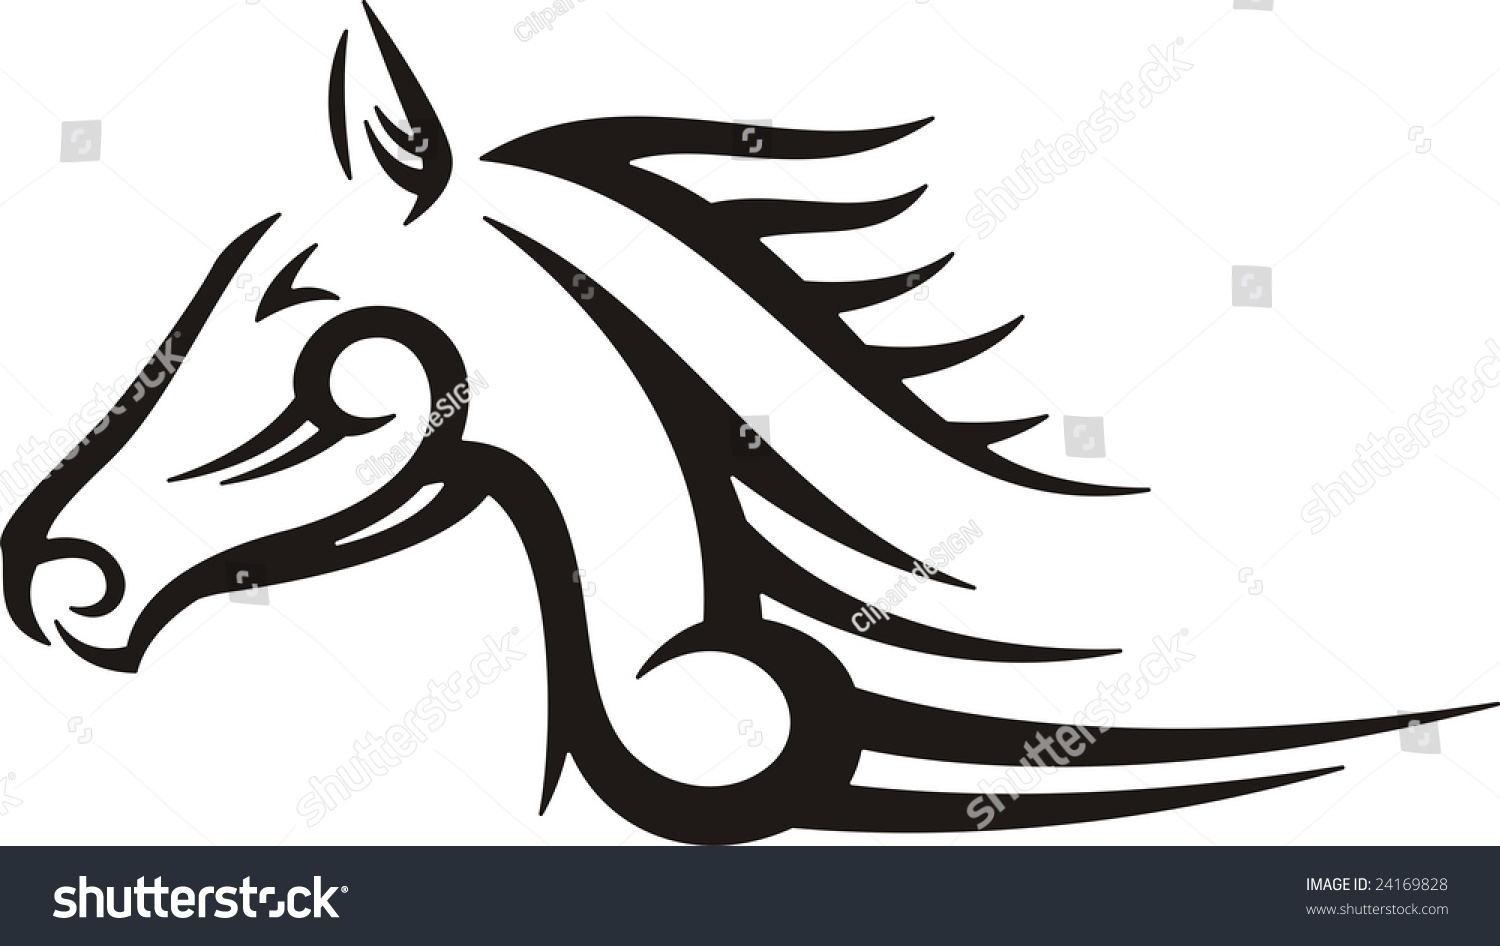 Car design sticker vector graphics - Tribal Horse Vector Illustration Great For Vehicle Graphics Stickers And T Shirt Designs